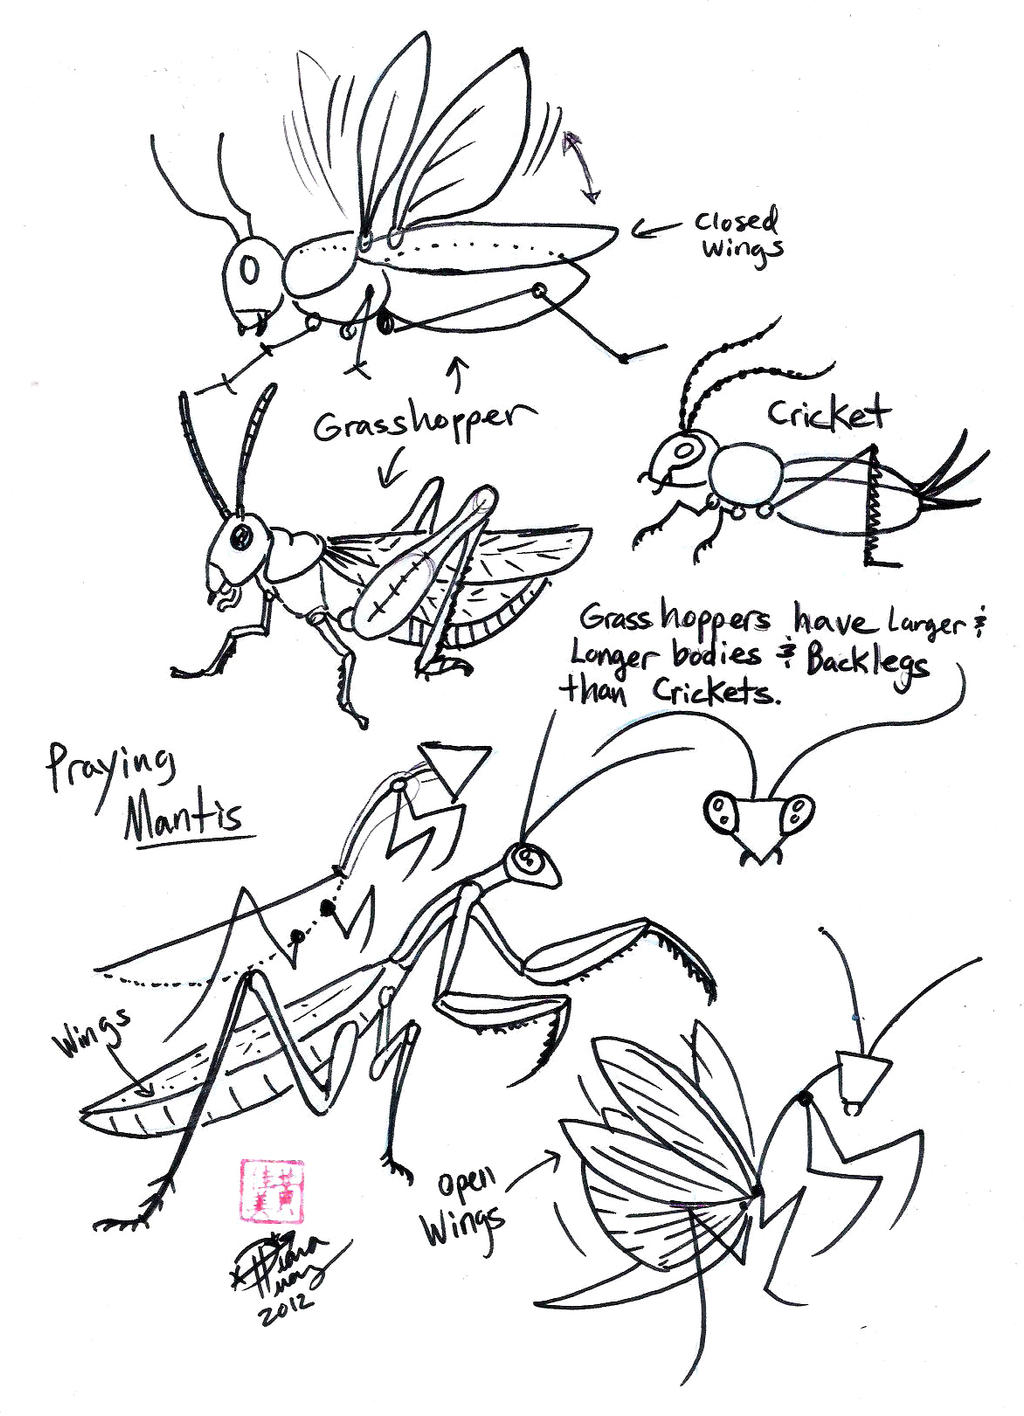 Draw Grasshopper Cricket And Praying Mantis By Diana Huang On